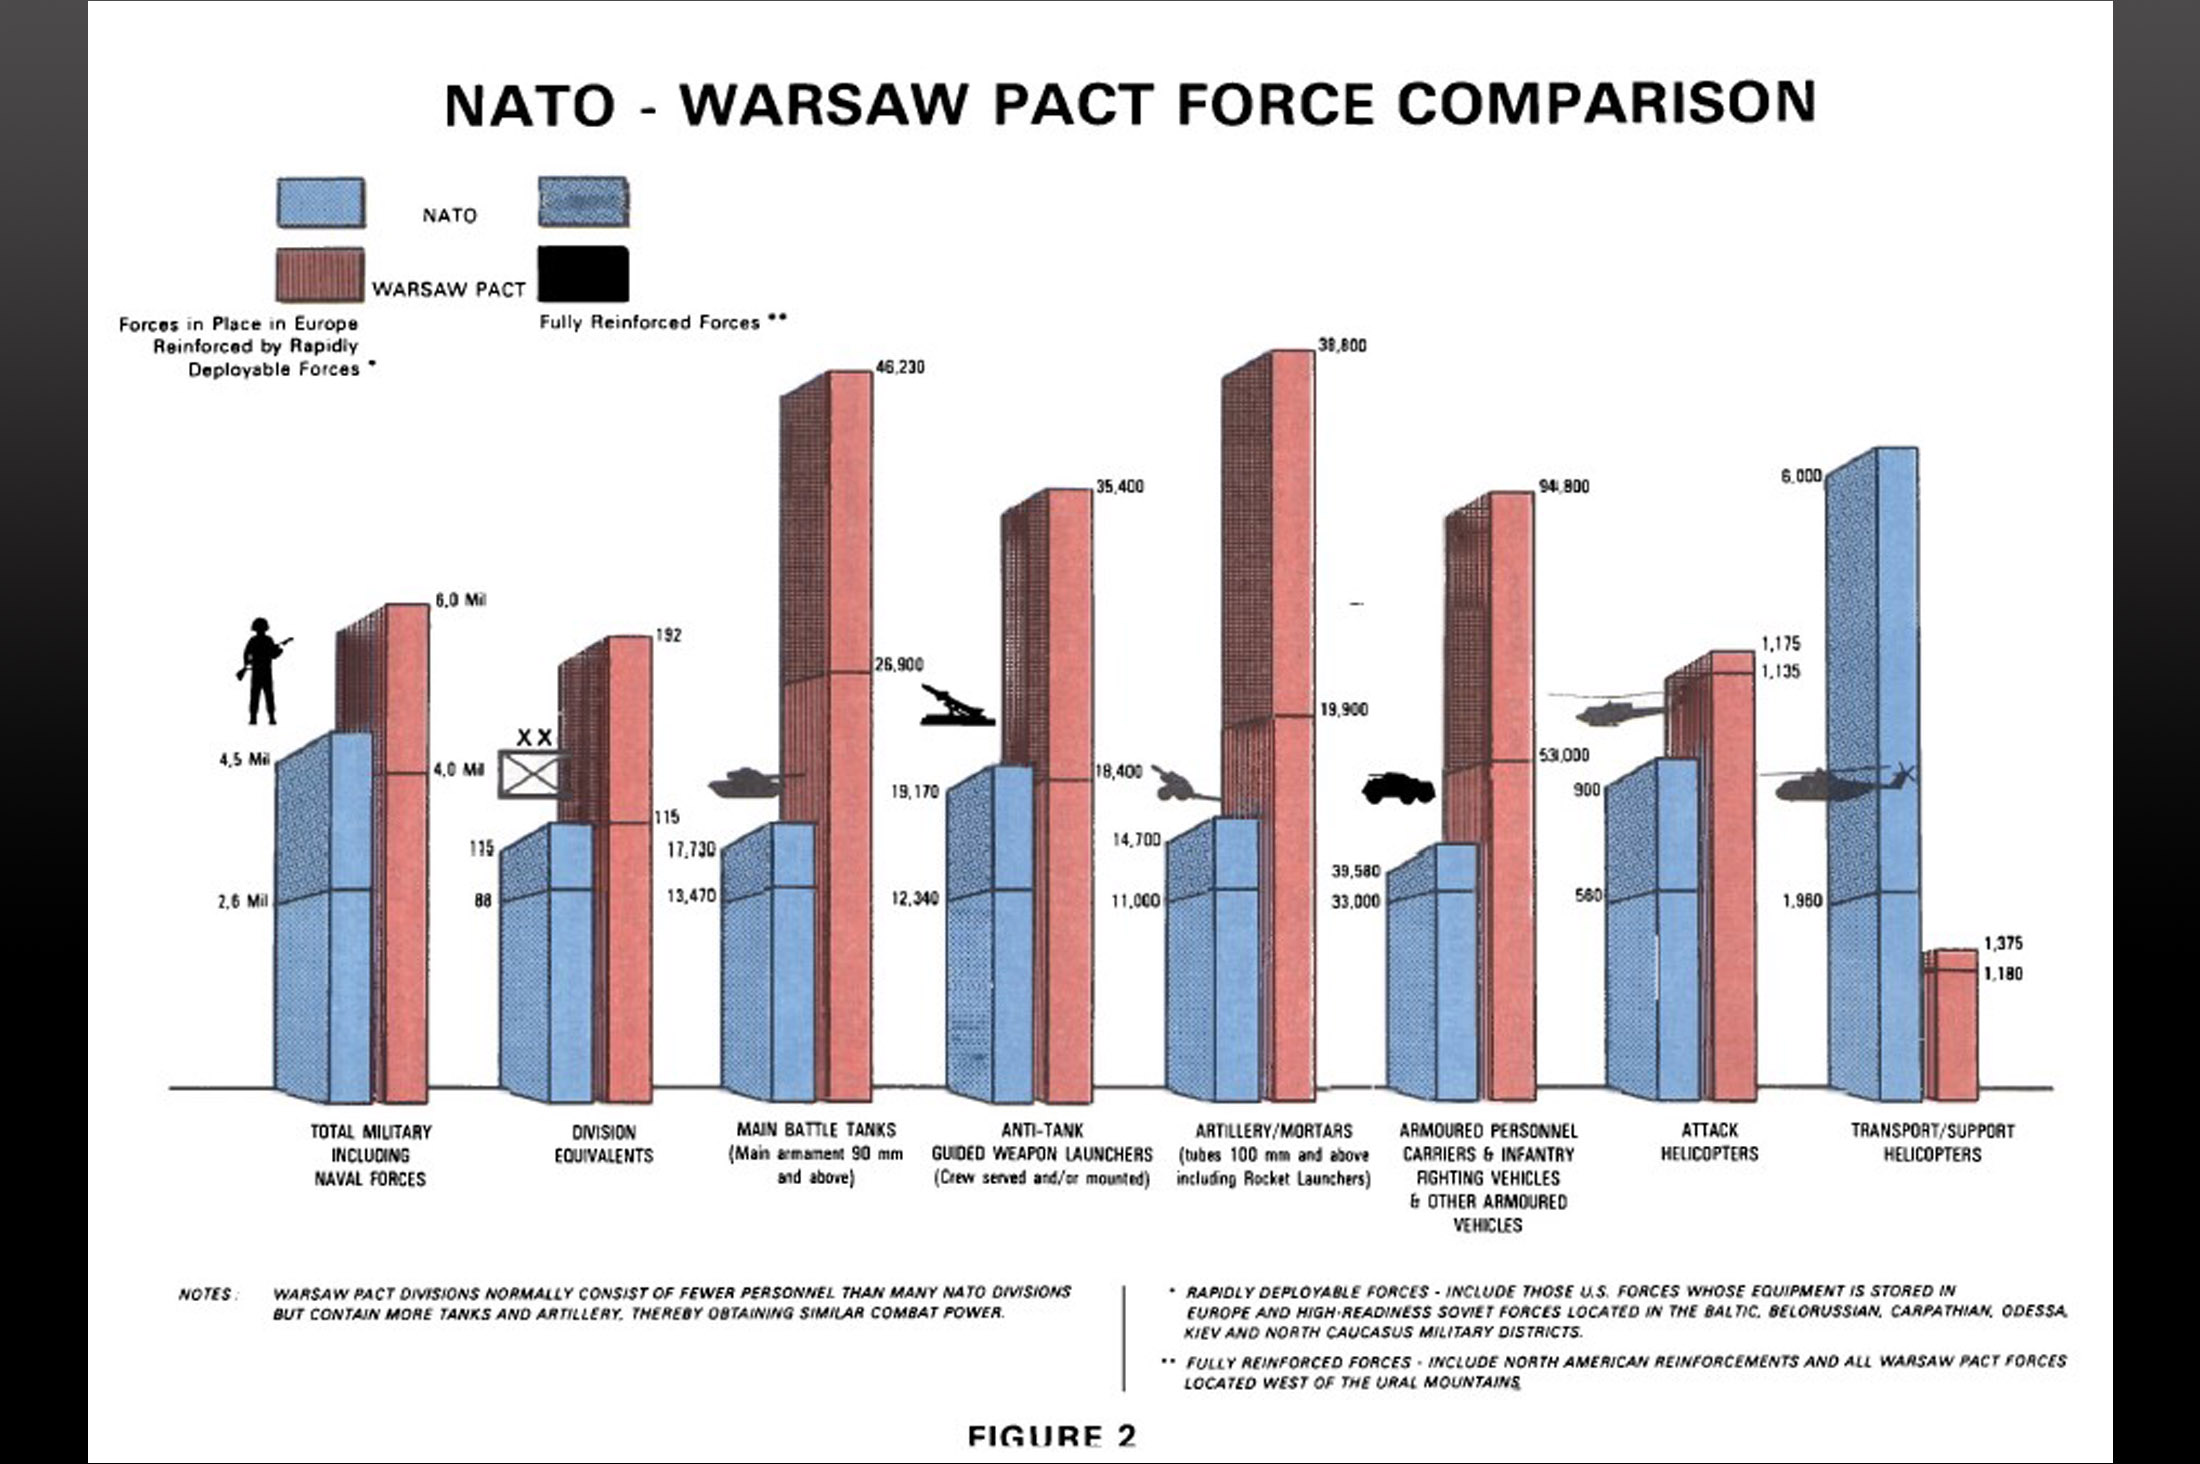 NATO - Declassified: NATO and Warsaw Pact: Force Comparisons